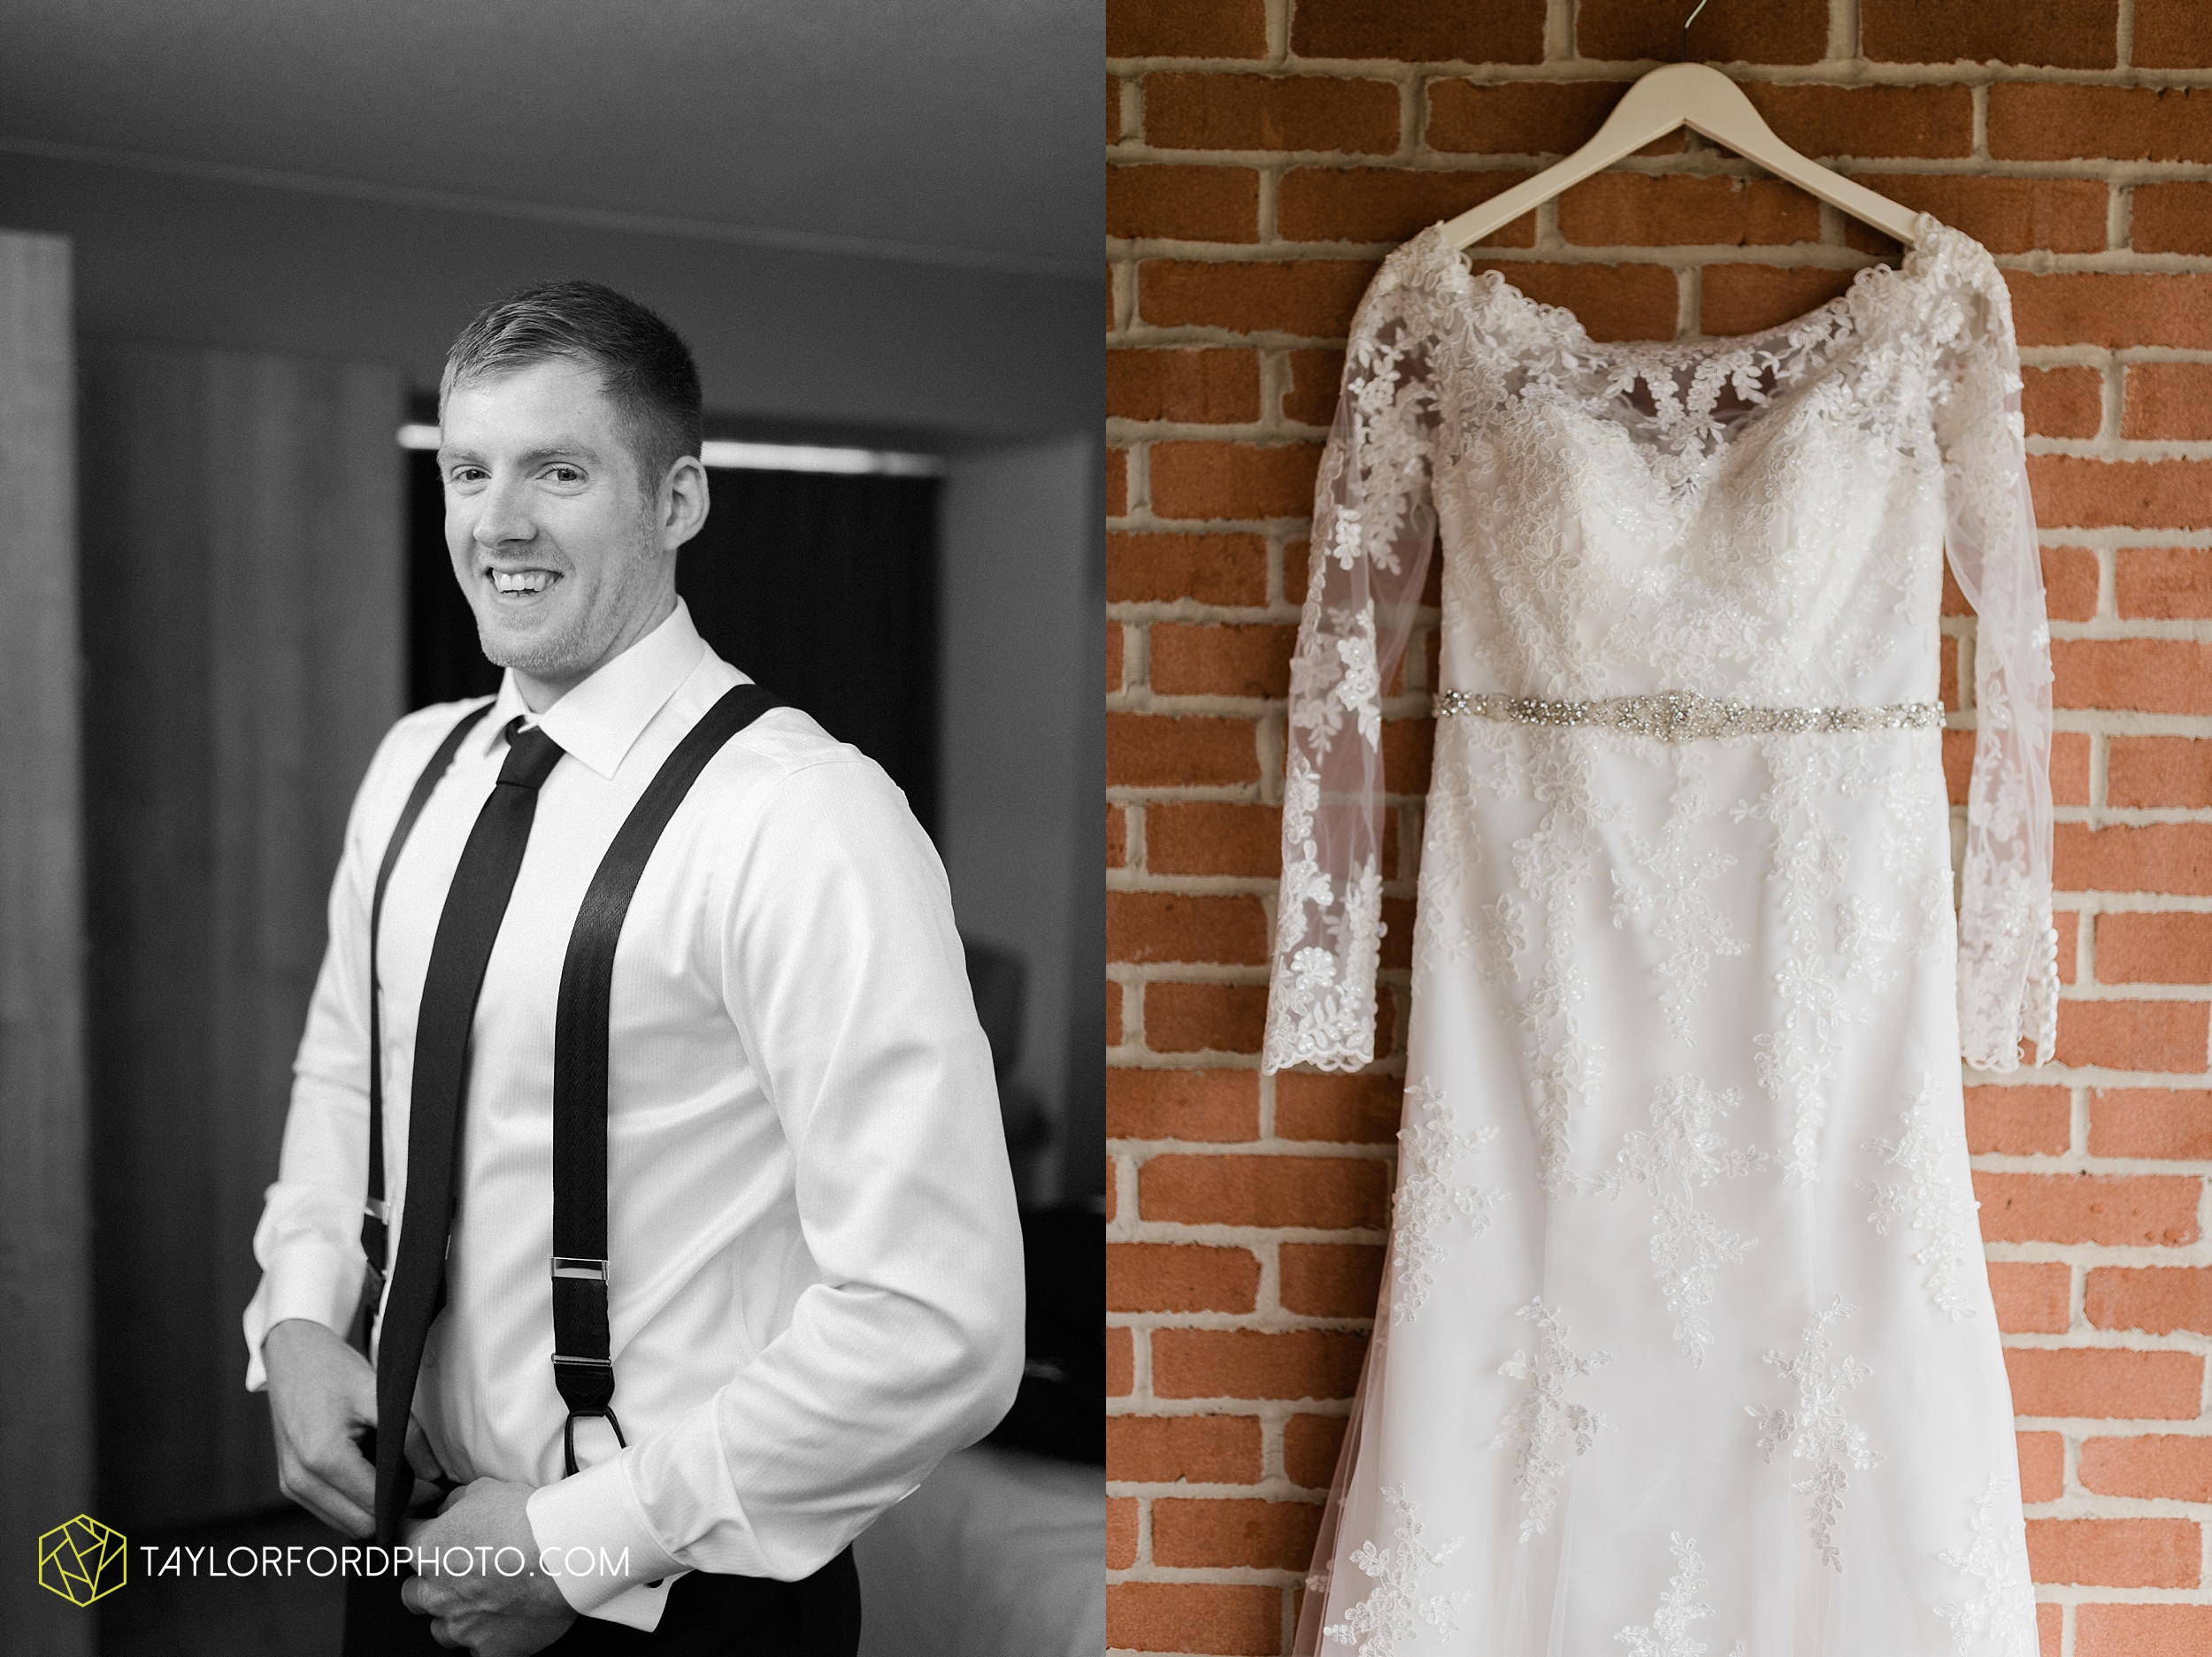 gayle-rayman-mike-steele-ottoville-ohio-wedding-immaculate-conception-parish-center-wedding-sycamore-lake-winery-wannamachers-photographer-taylor-ford-photography_0379.jpg